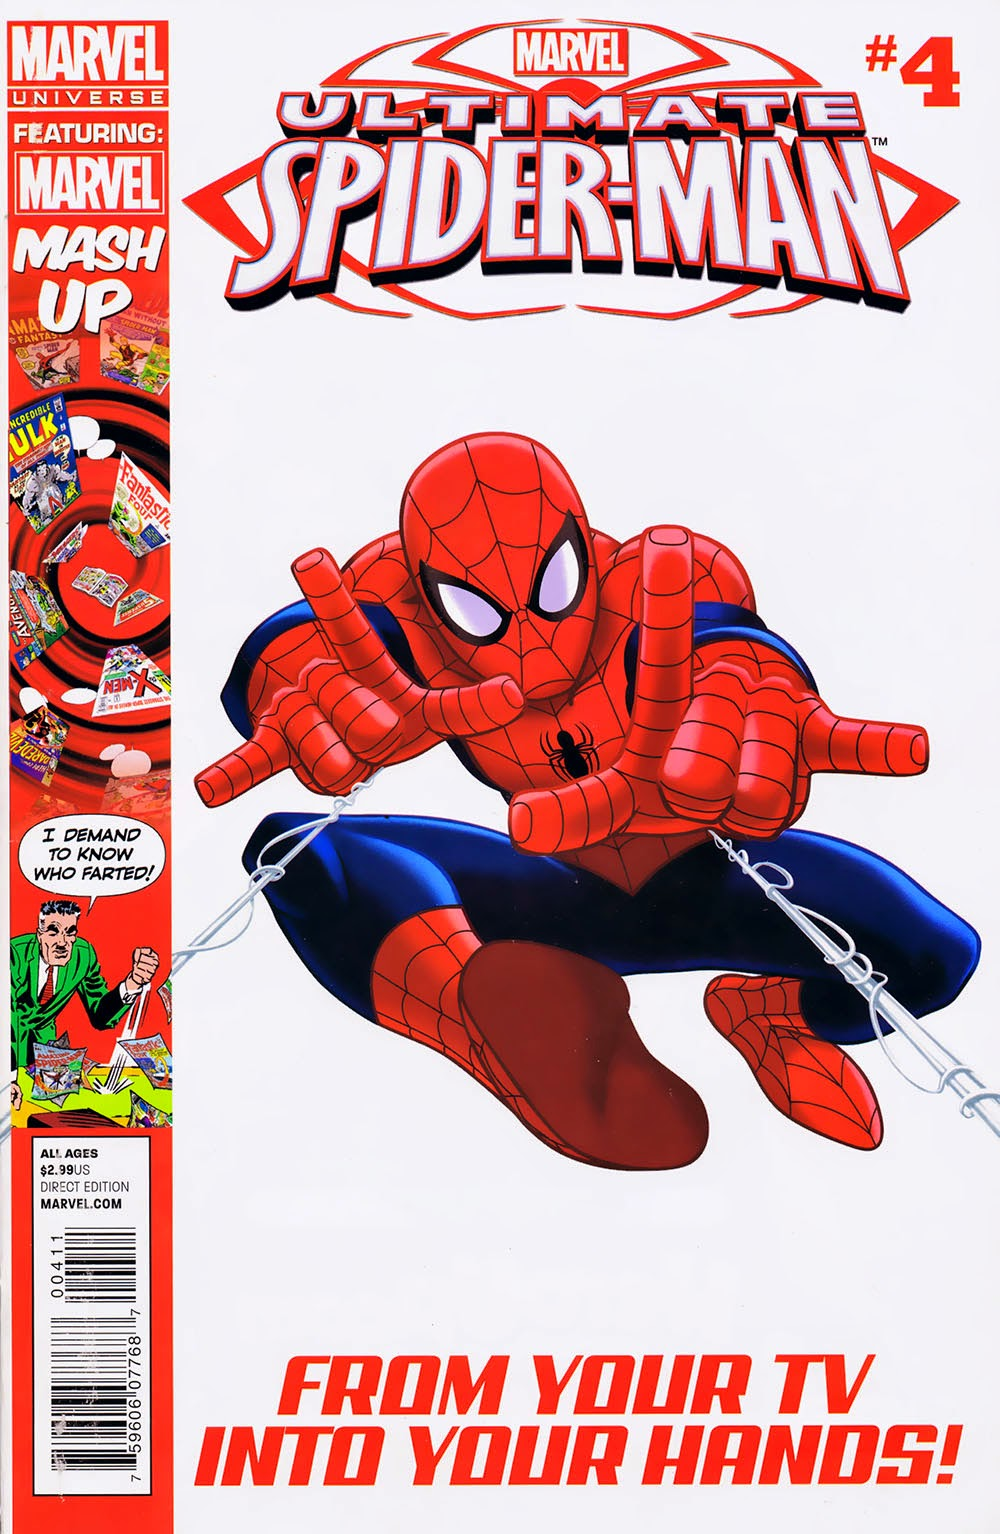 Marvel Universe: Ultimate Spider-Man Vol 1 4